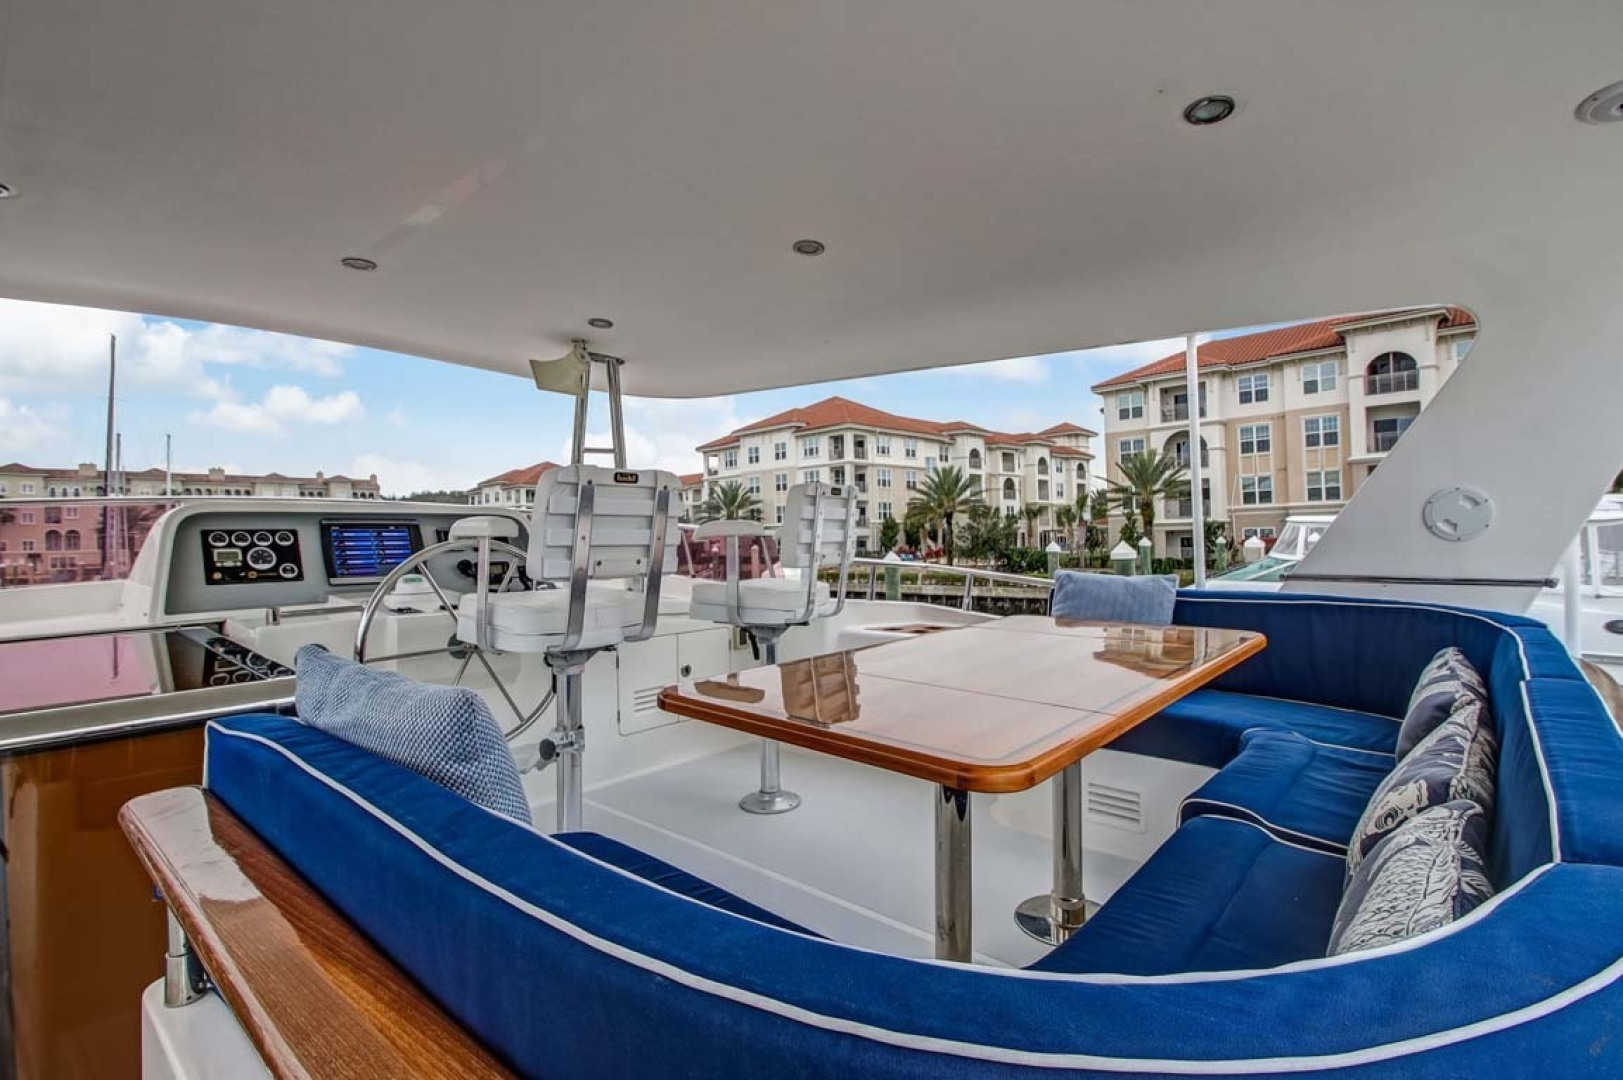 Selene-60 Ocean Trawler 2010-Gypsy Magic Jacksonville-Florida-United States-Bridge Deck Helm-1346783 | Thumbnail